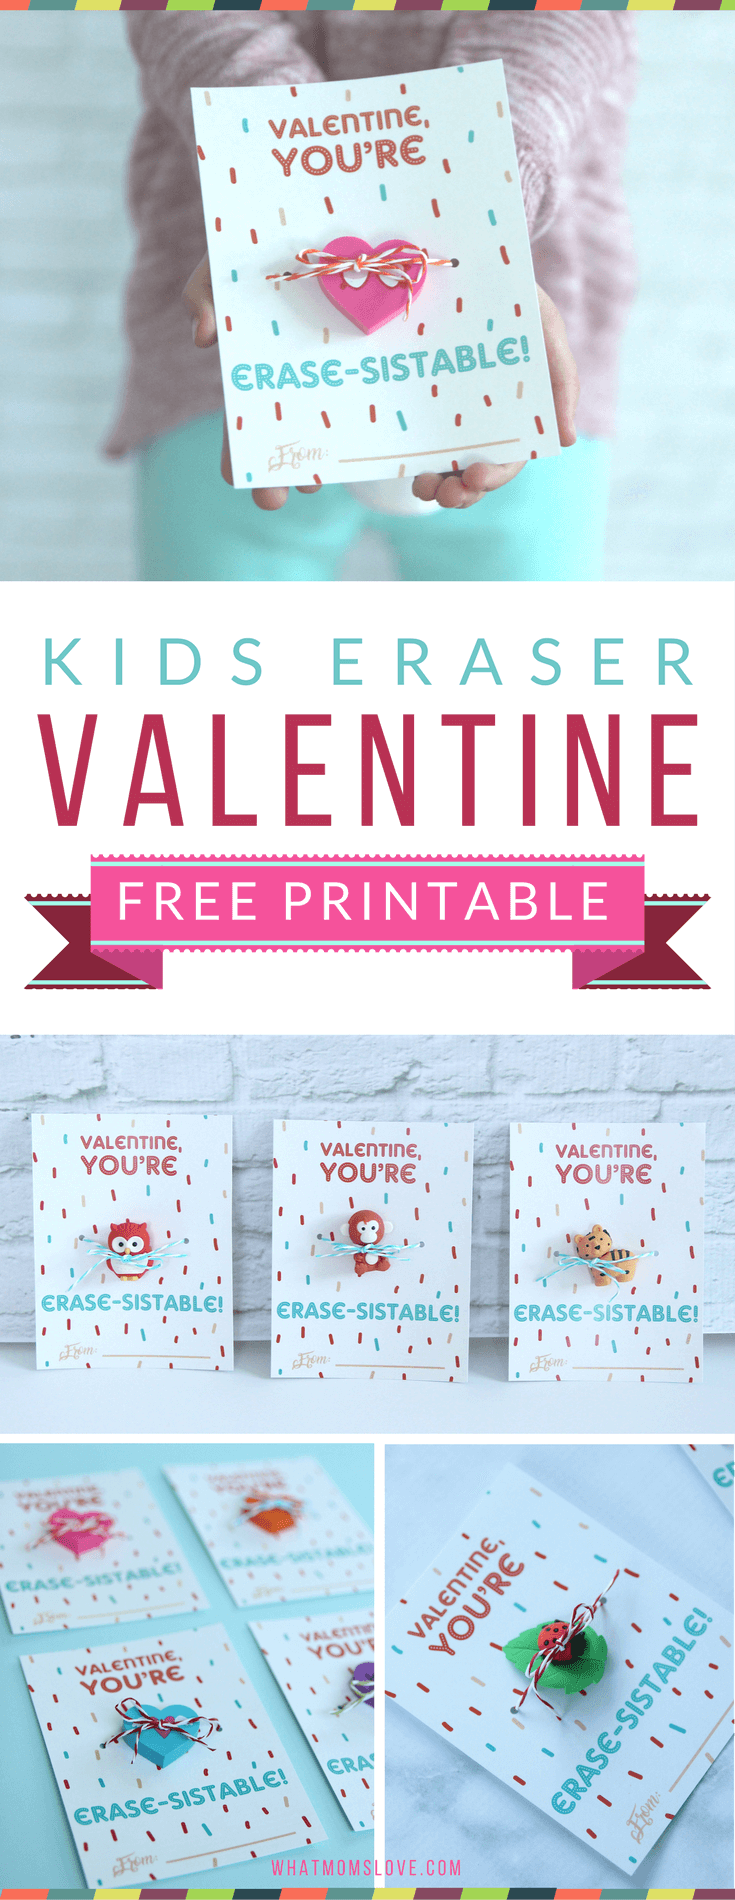 Valentine Card for Kids with Eraser